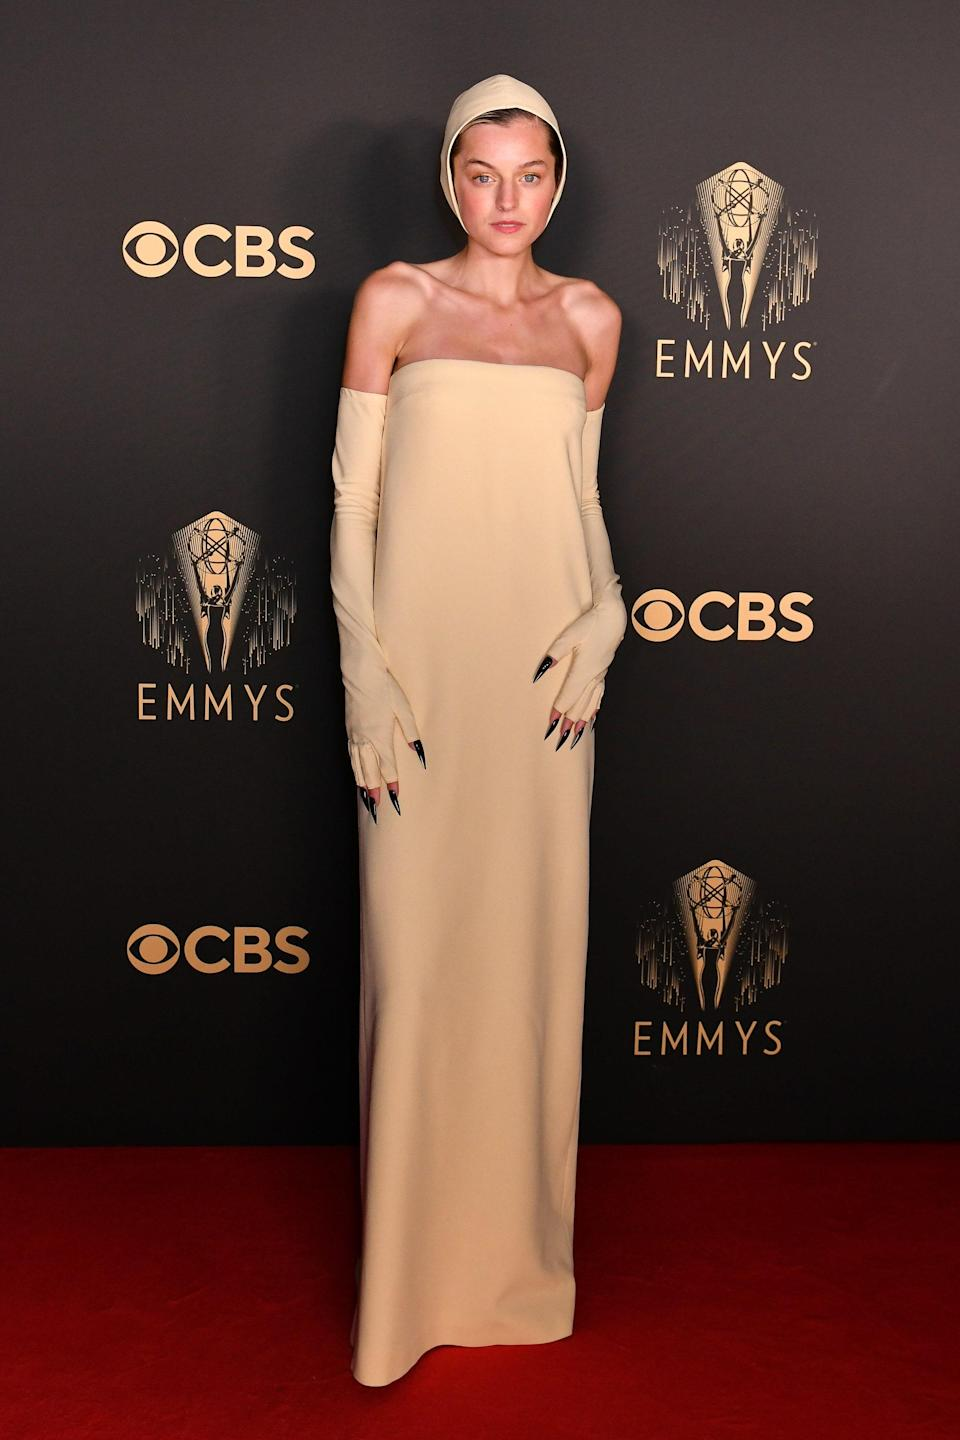 """<em>The Crown</em> actor Emma Corrin wore what they deemed """"Crucible Realness"""" to the awards show celebration in London, donning a custom pale cream strapless Miu Miu gown with matching gloves and a swim-style cap. Emma added a touch of edge and drama with stiletto nails in shiny black."""